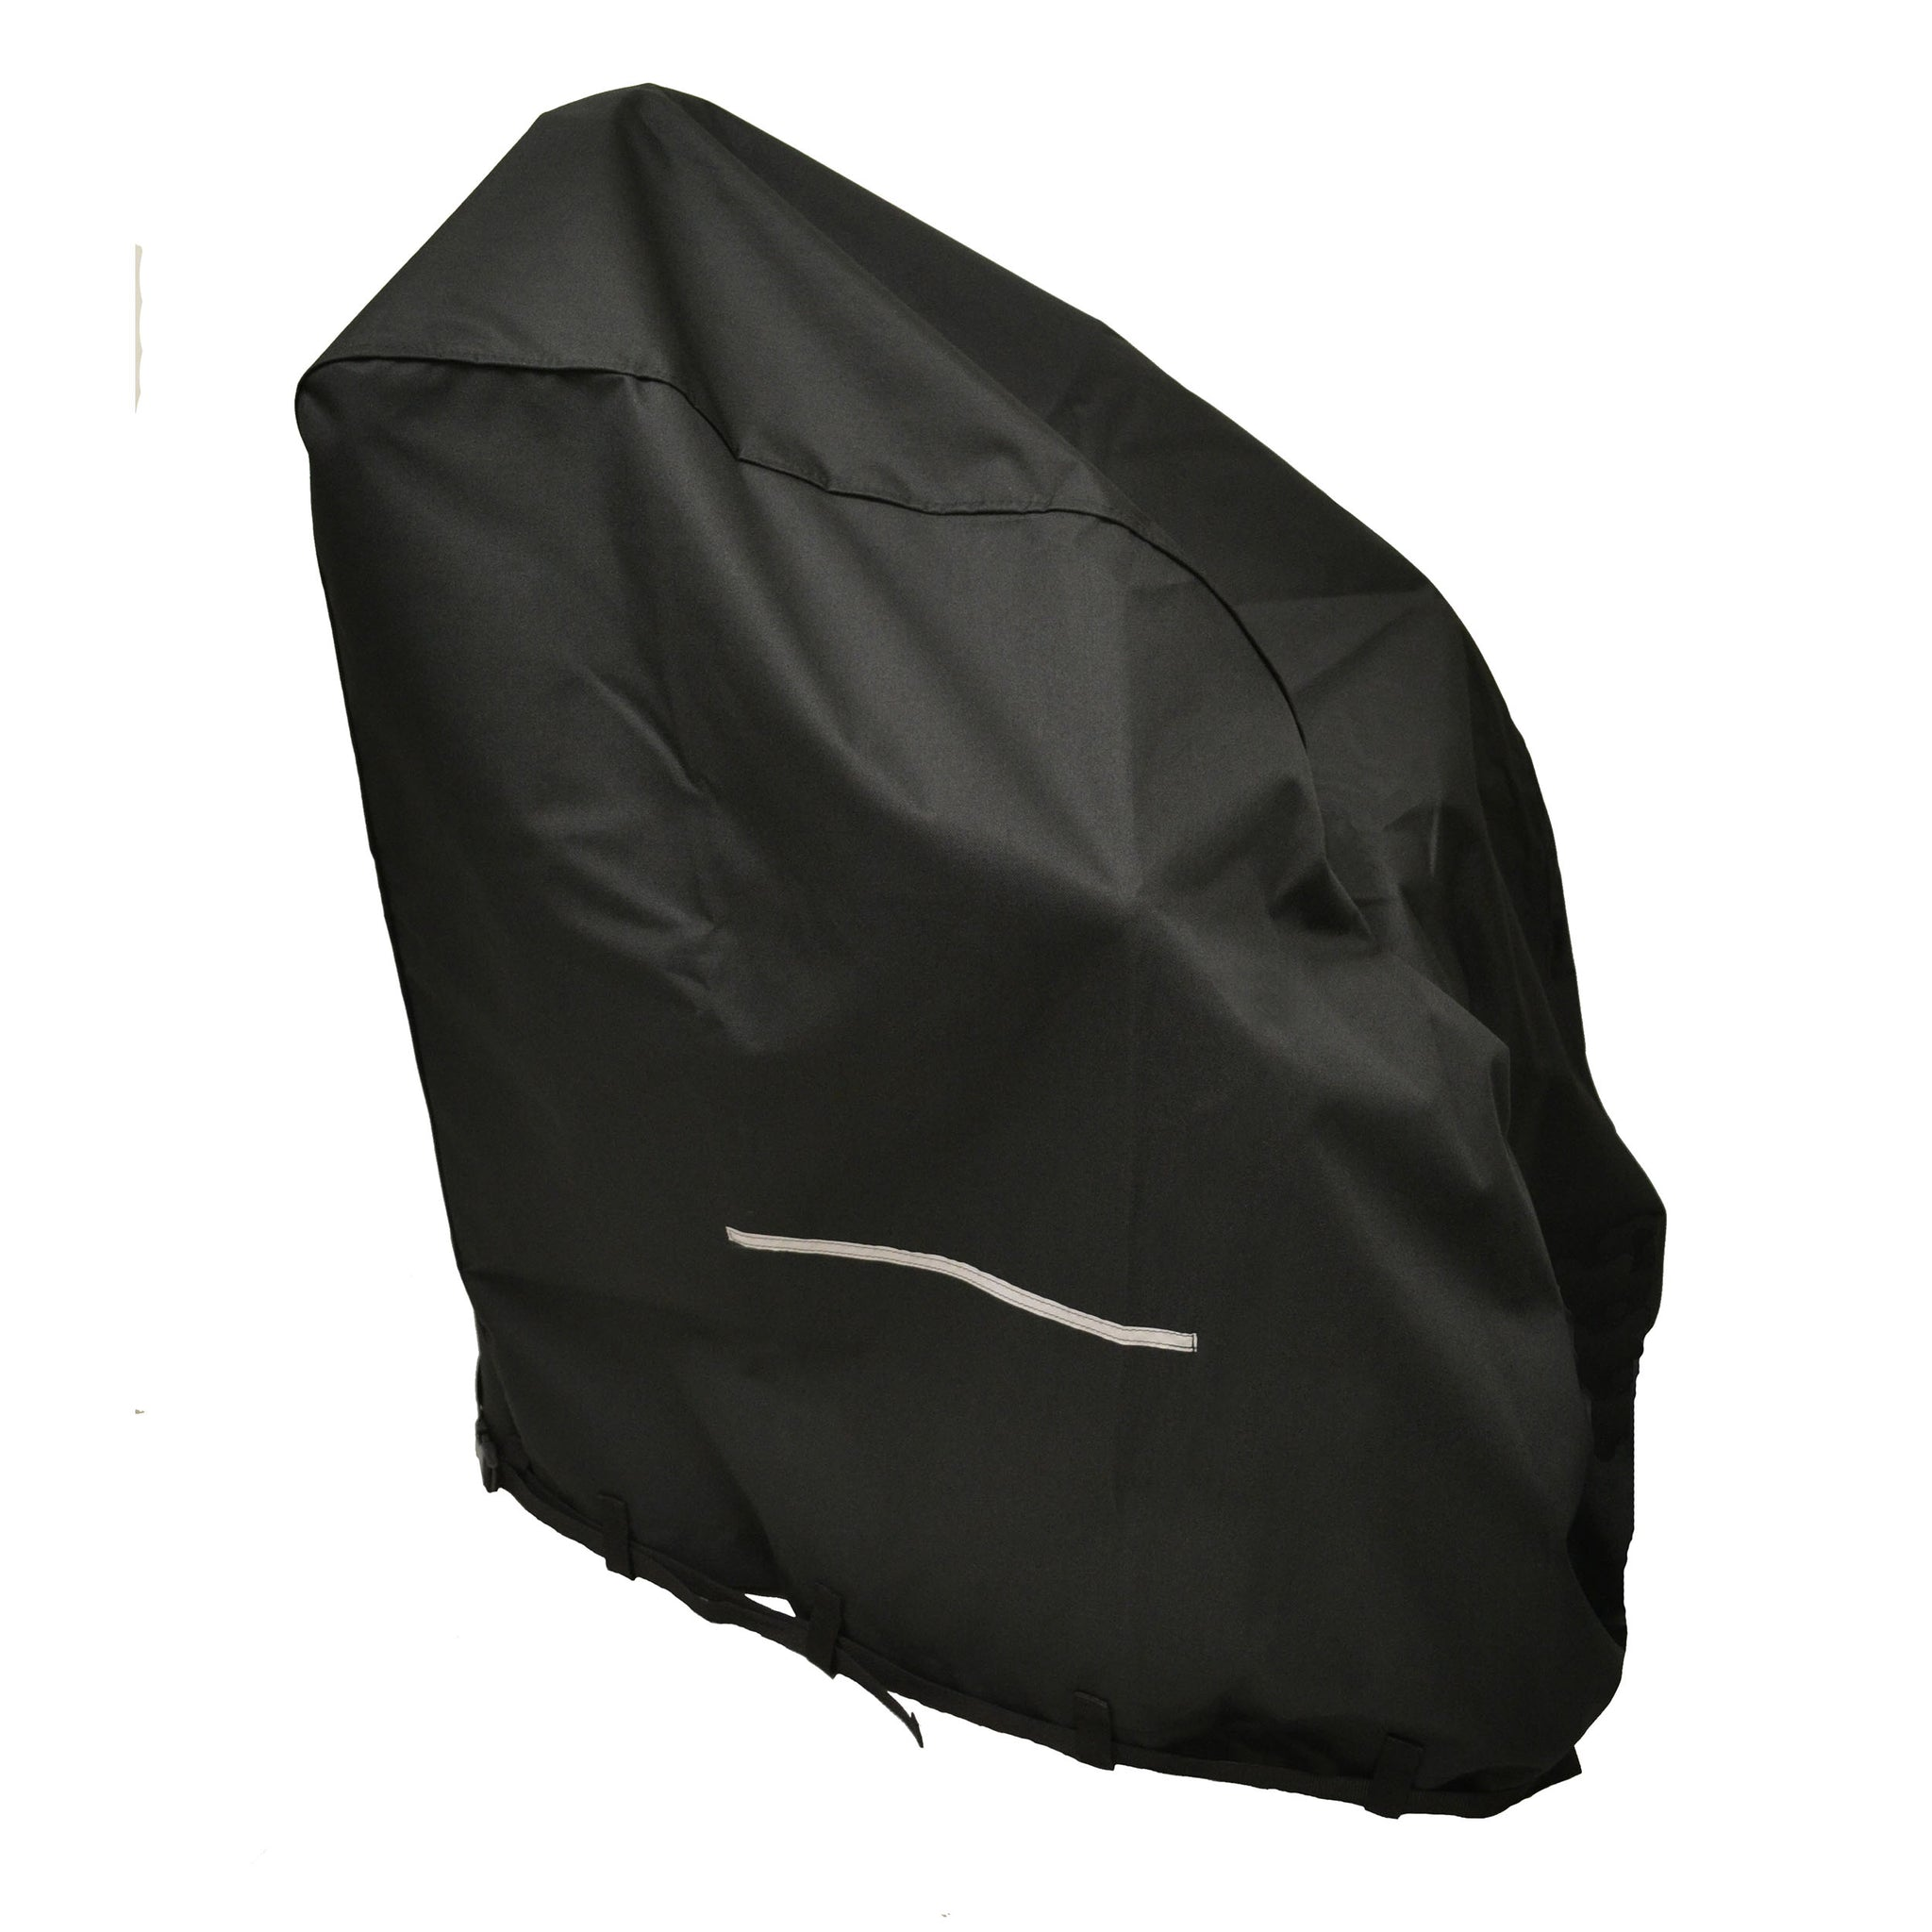 Diestco Tall Heavy Duty Powerchair Cover